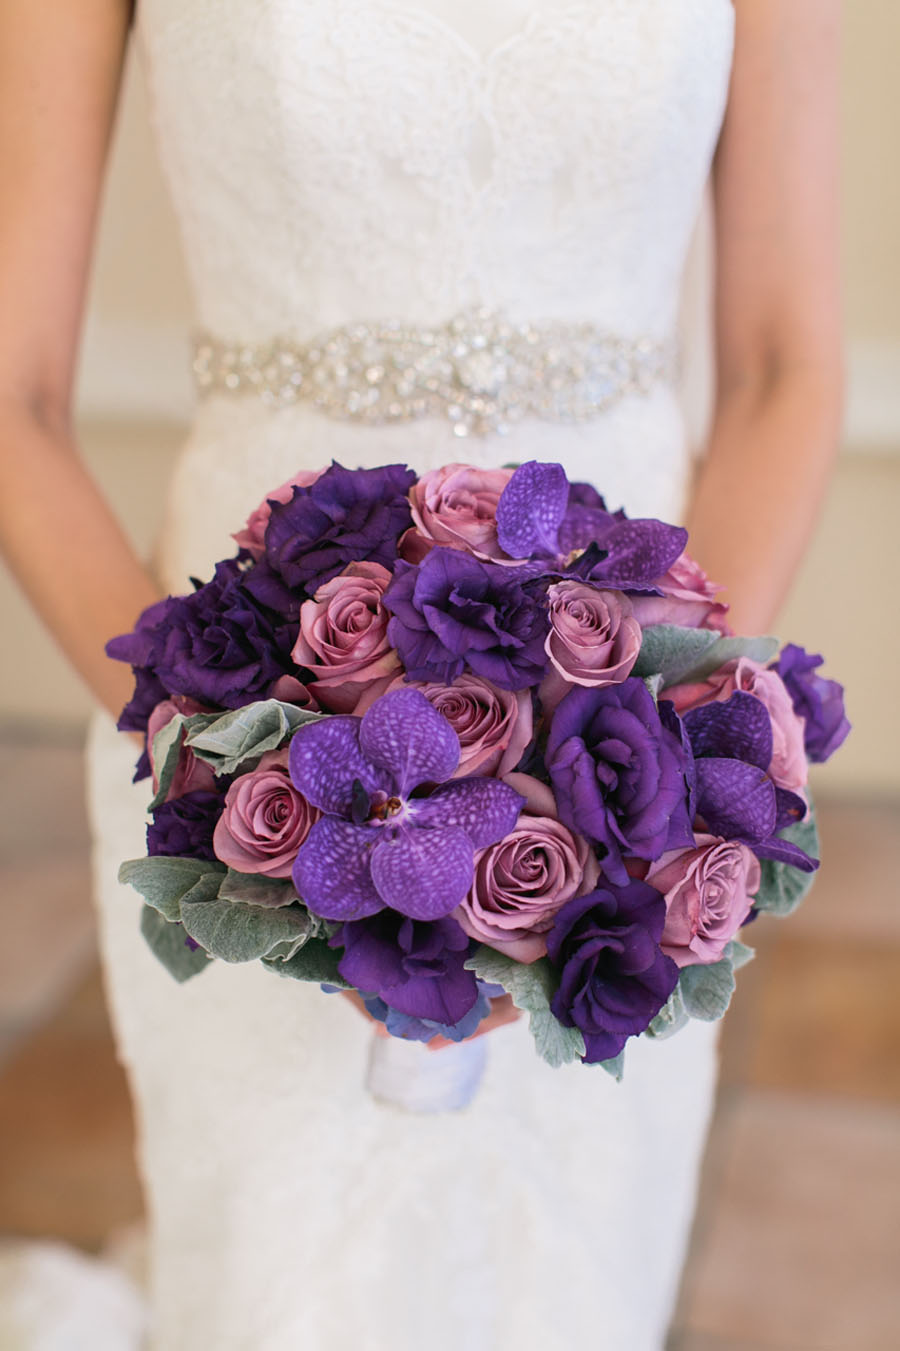 The Bridal Bouquet of Roses and Orchids.    Las Vegas Wedding Planner  Andrea Eppolito .  Wedding at  Four Seasons .  Photography by  Meg Ruth .  Floral and Decor by  Naakiti Floral .